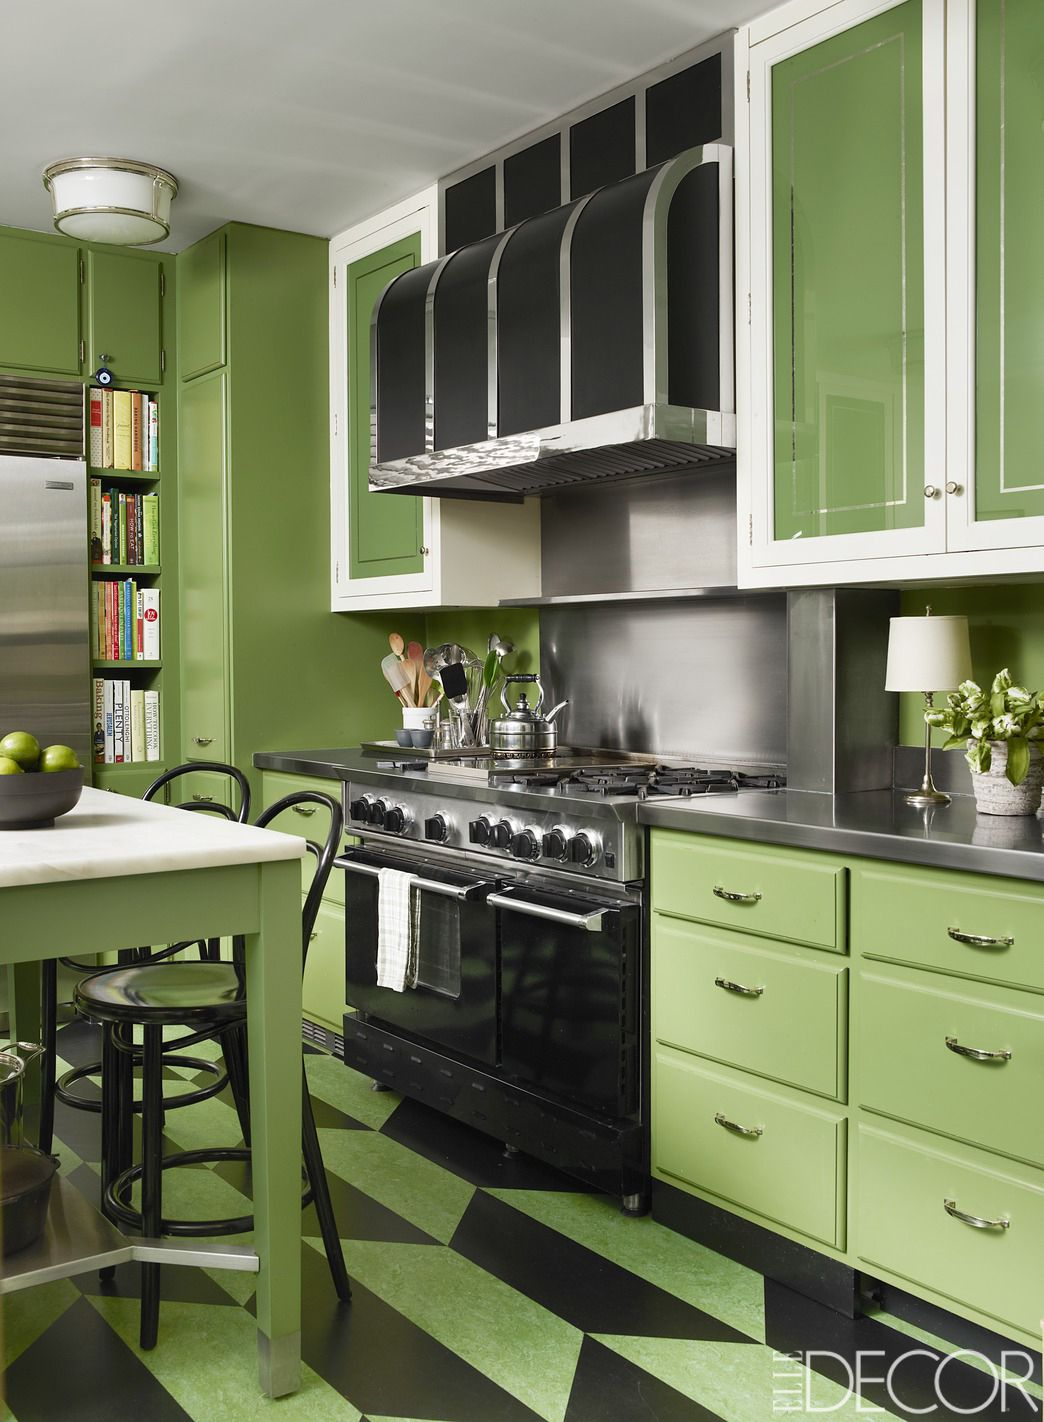 Kitchens For Small Spaces 40 Small Kitchen Design Ideas Decorating Tiny Kitchens